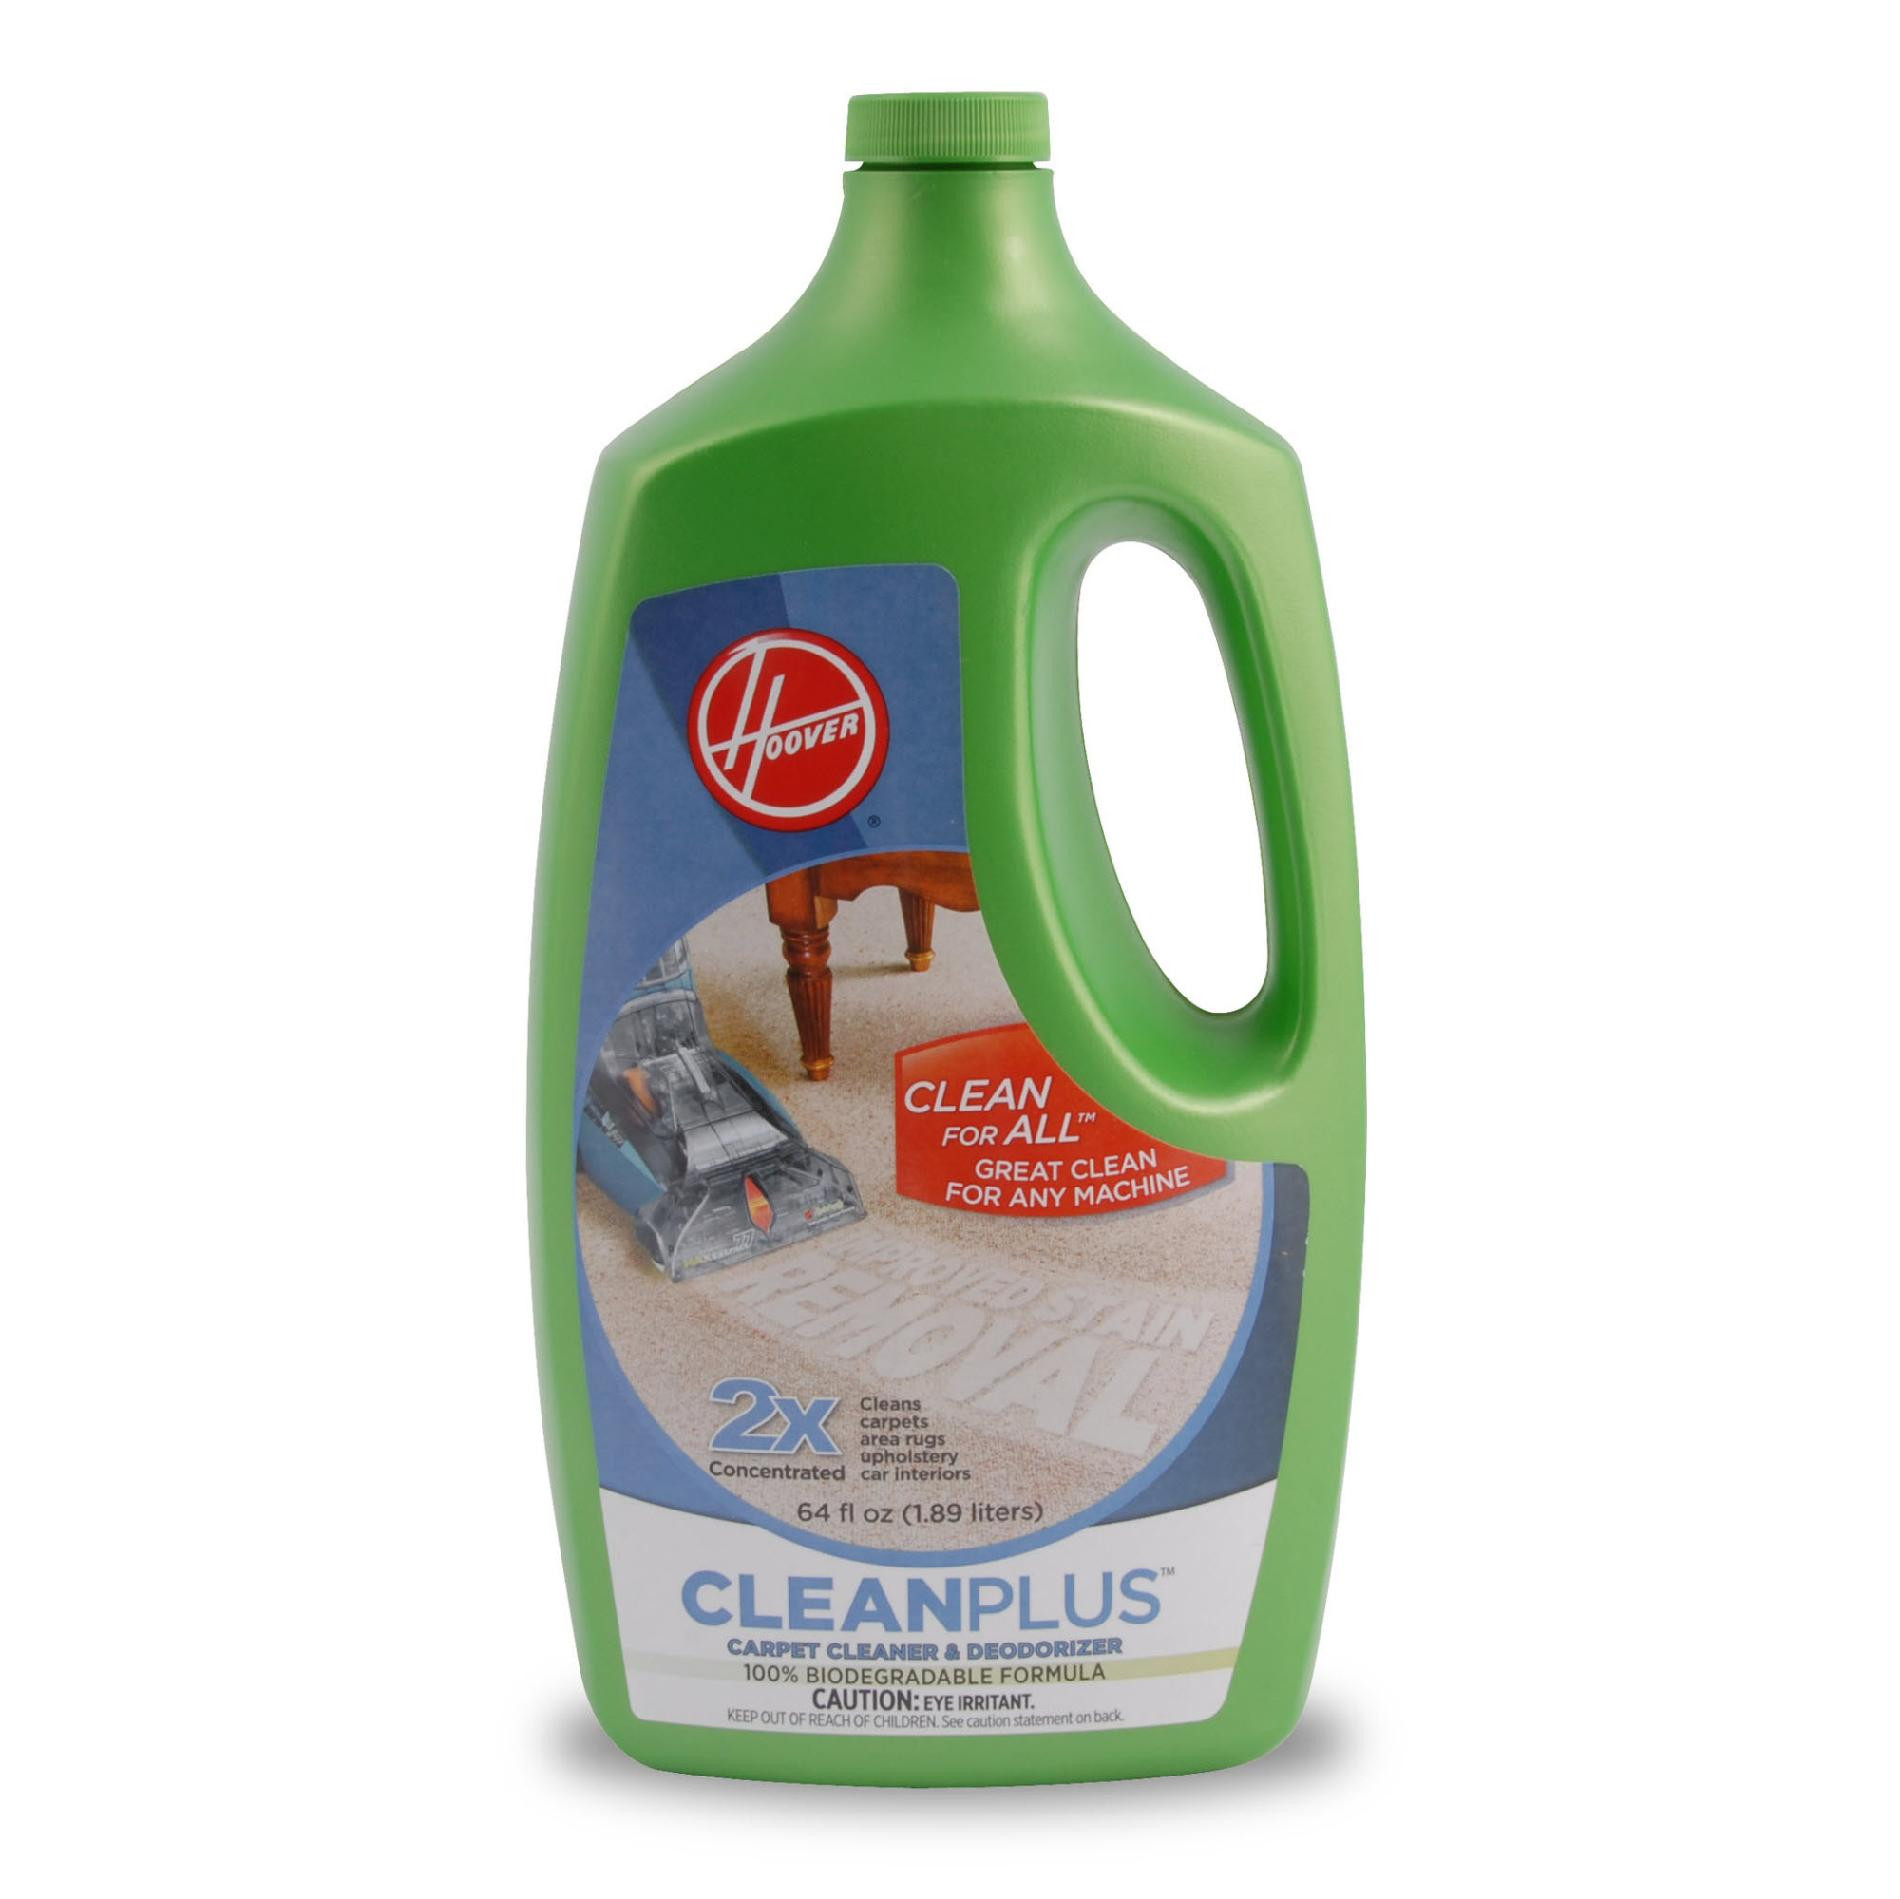 hoover hardwood floor cleaner floormate spinscrub of floor care the hoover company the best prices for appliances online inside 2x deep cleansing carpet upholstery detergent 64oz